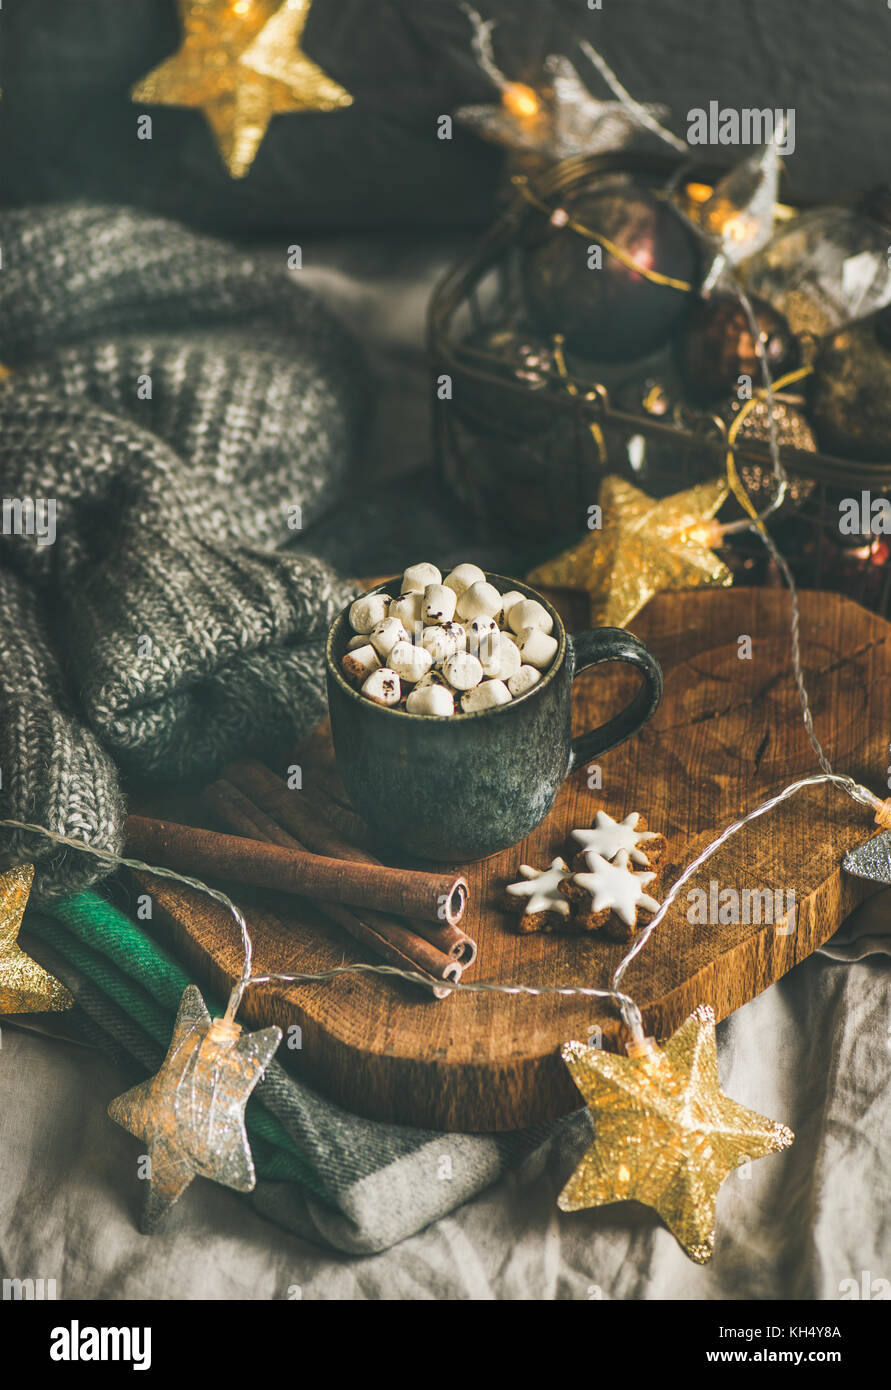 Christmas winter hot chocolate with marshmellows and cinnamon sticks - Stock Image